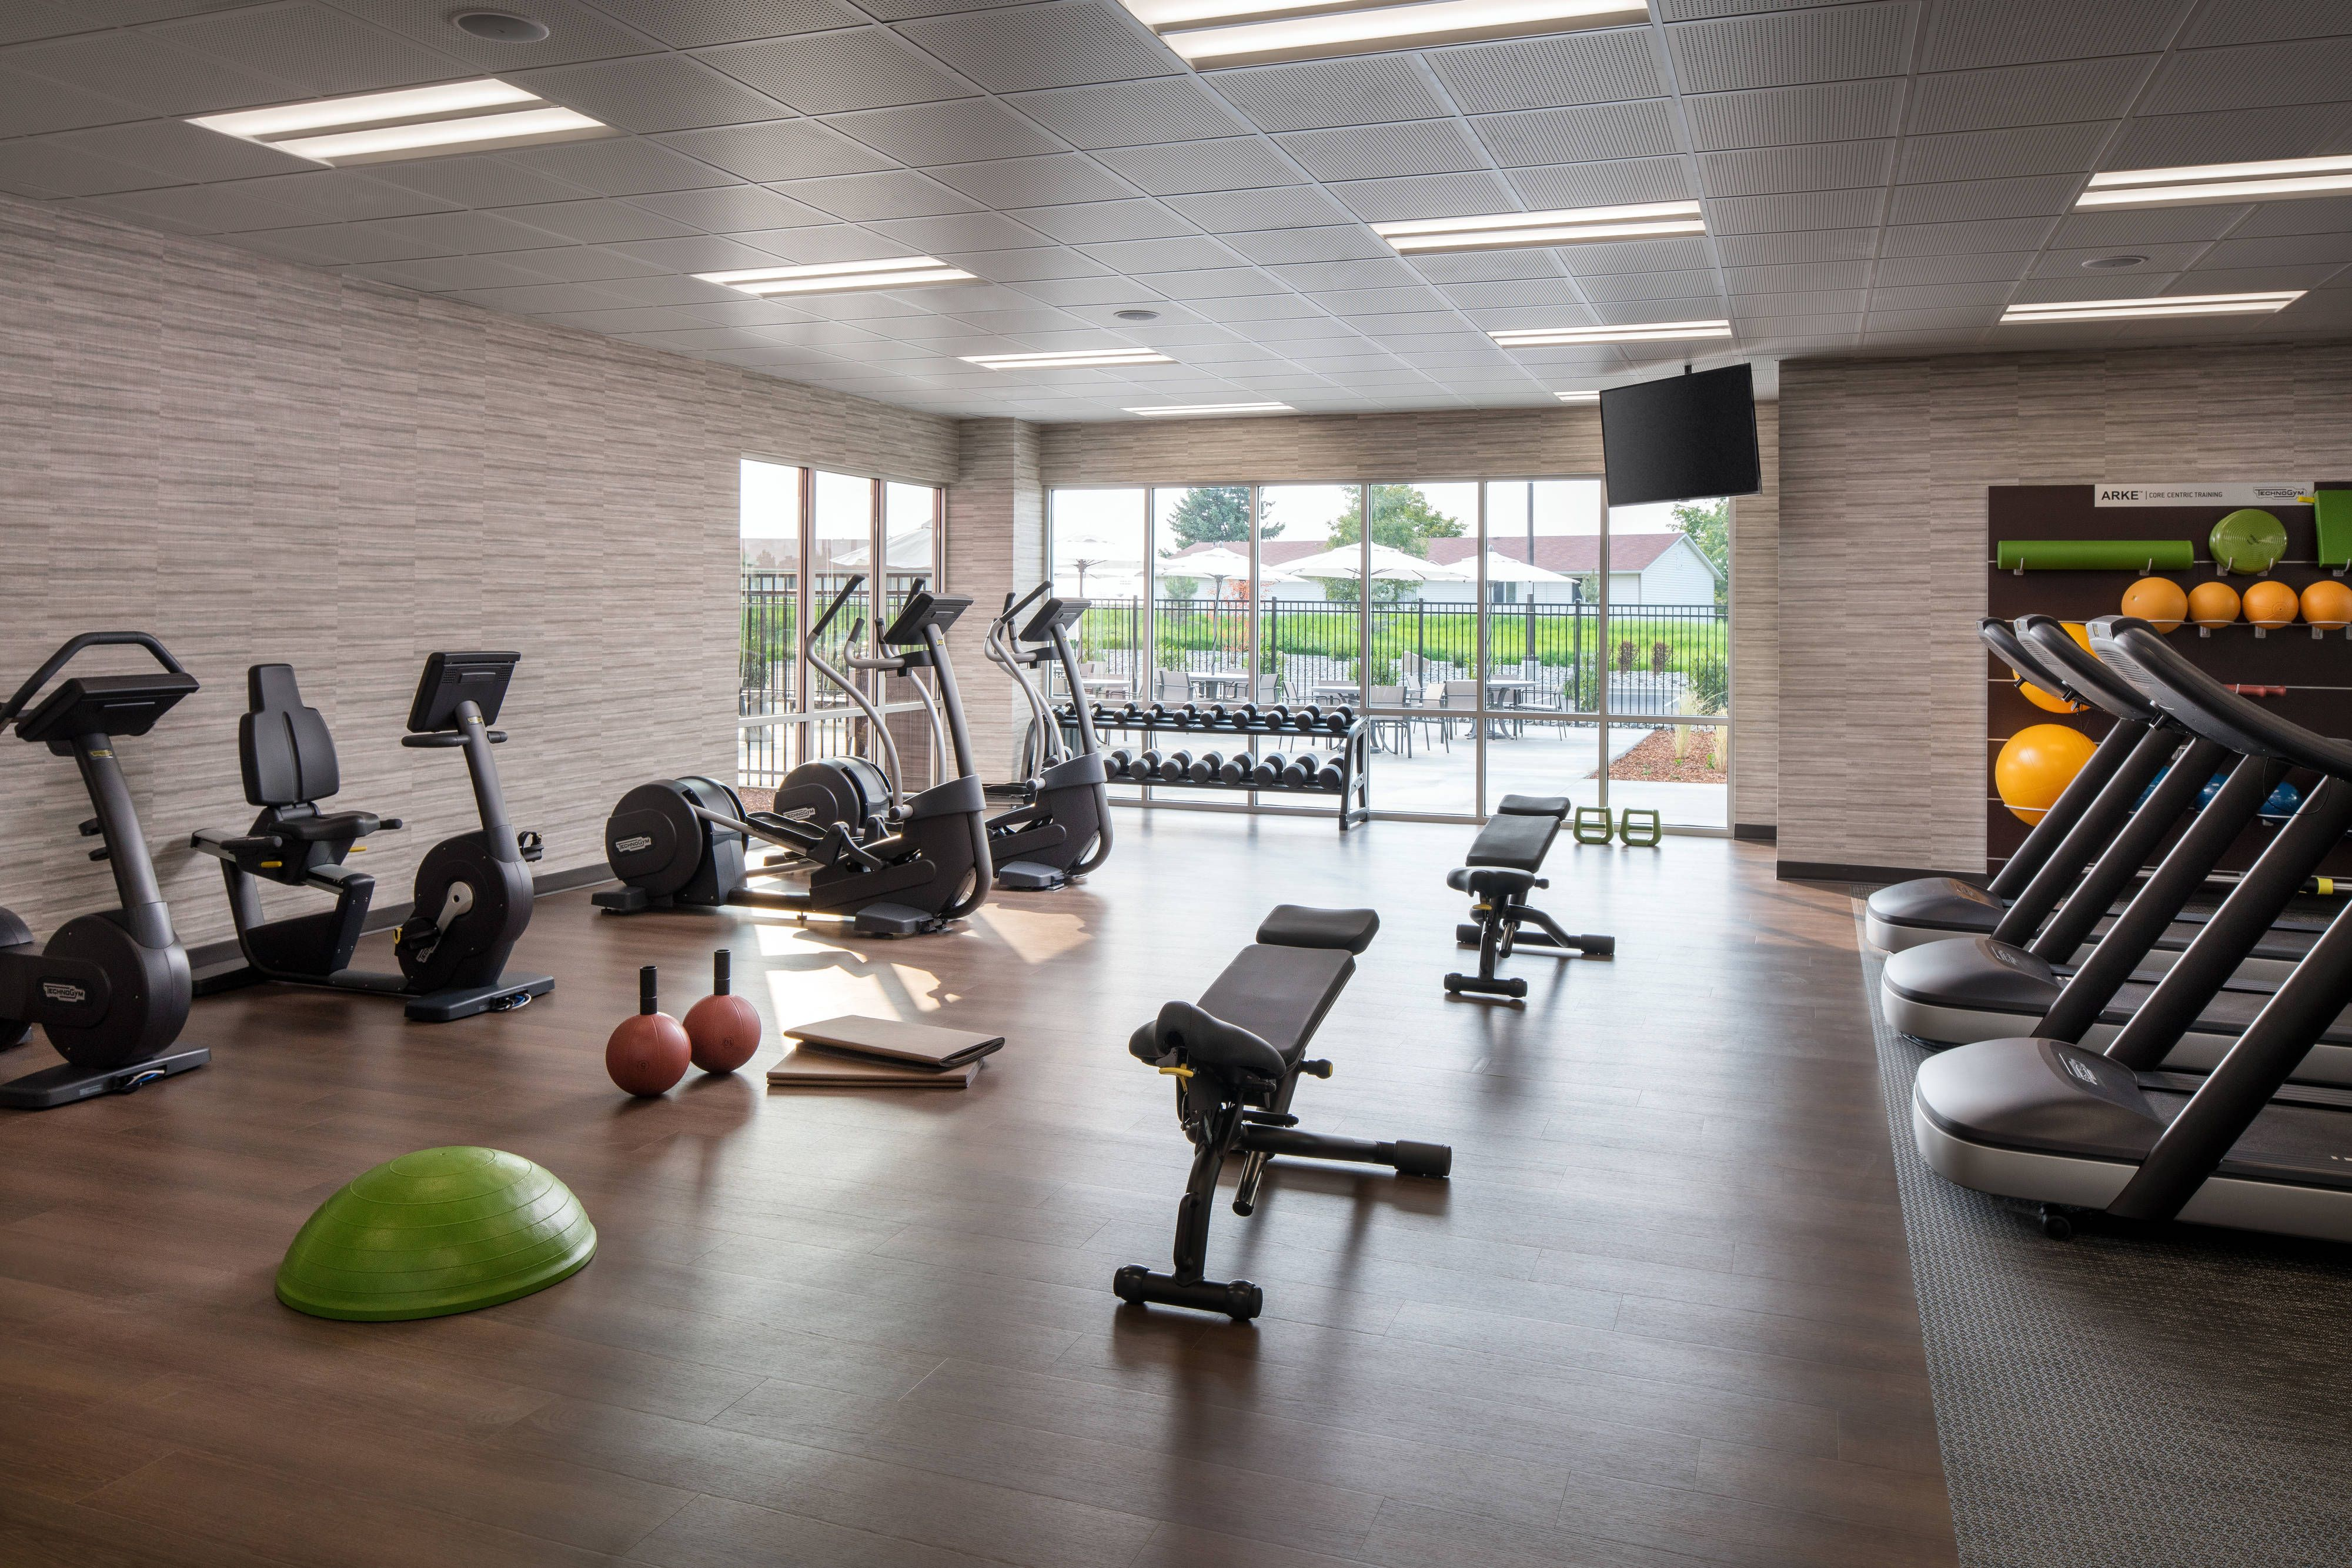 Courtyard Pullman Fitness Center Beautiful Holiday Happy Modern Hotel Room Modern Hotel Hotels Room